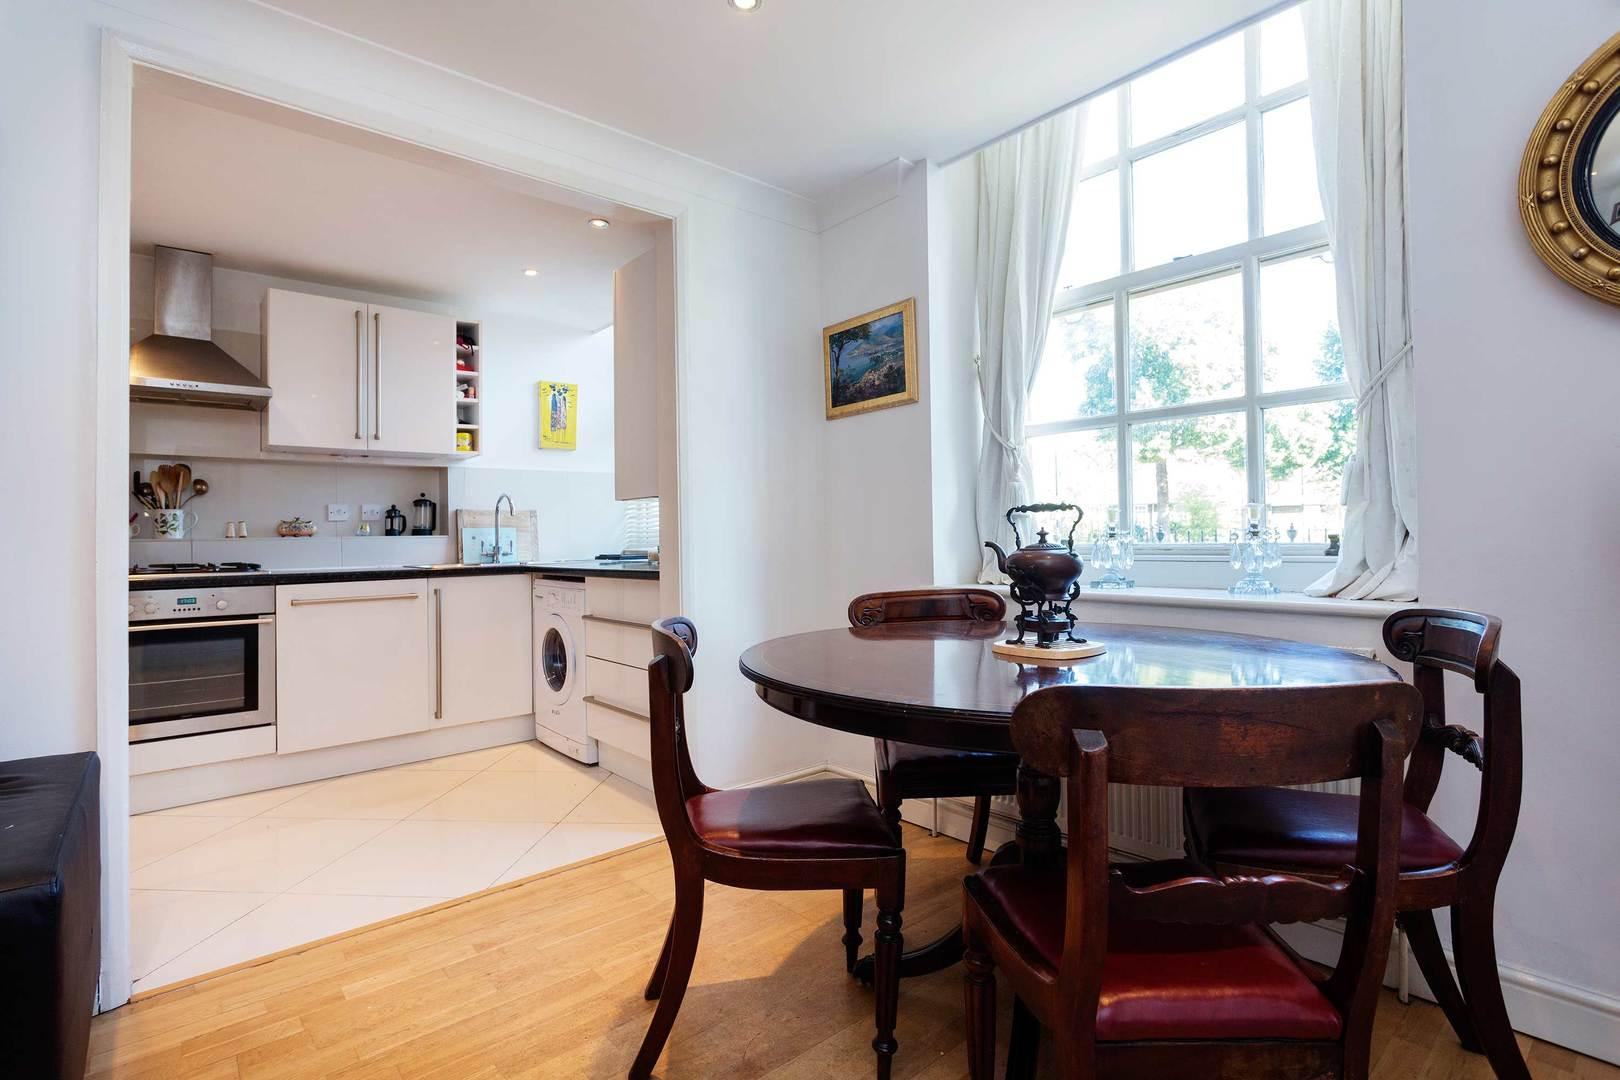 Property Image 1 - Classic Chic Notting Hill Apartment with Private Garden